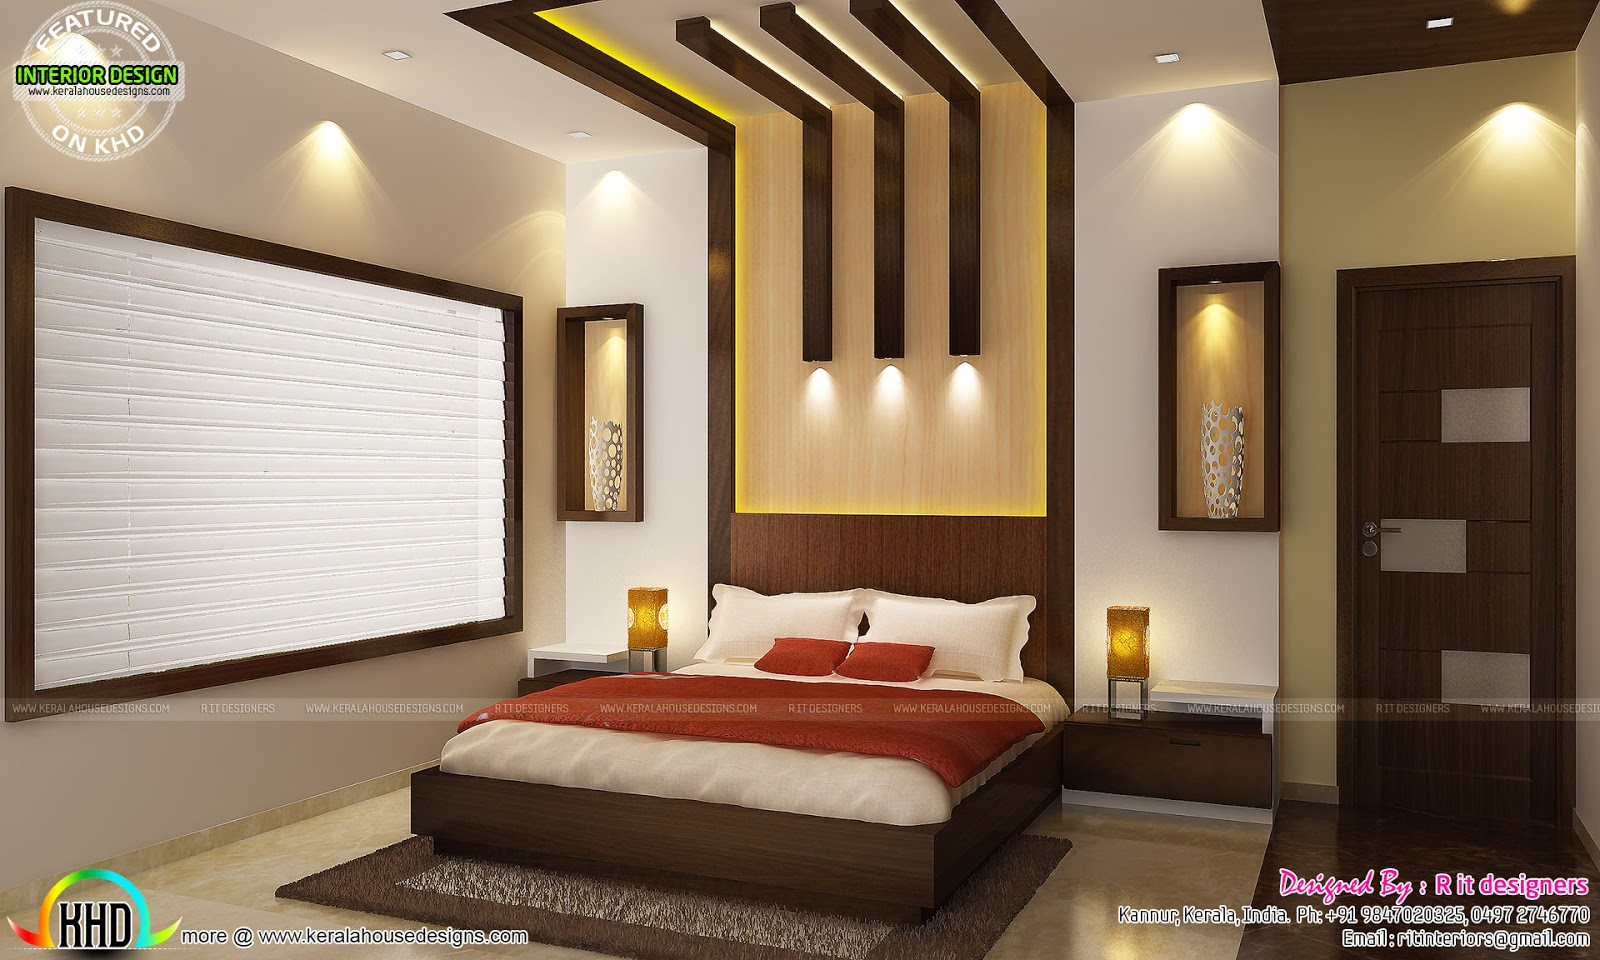 Kitchen living bedroom dining interior decor kerala for Home design ideas hindi